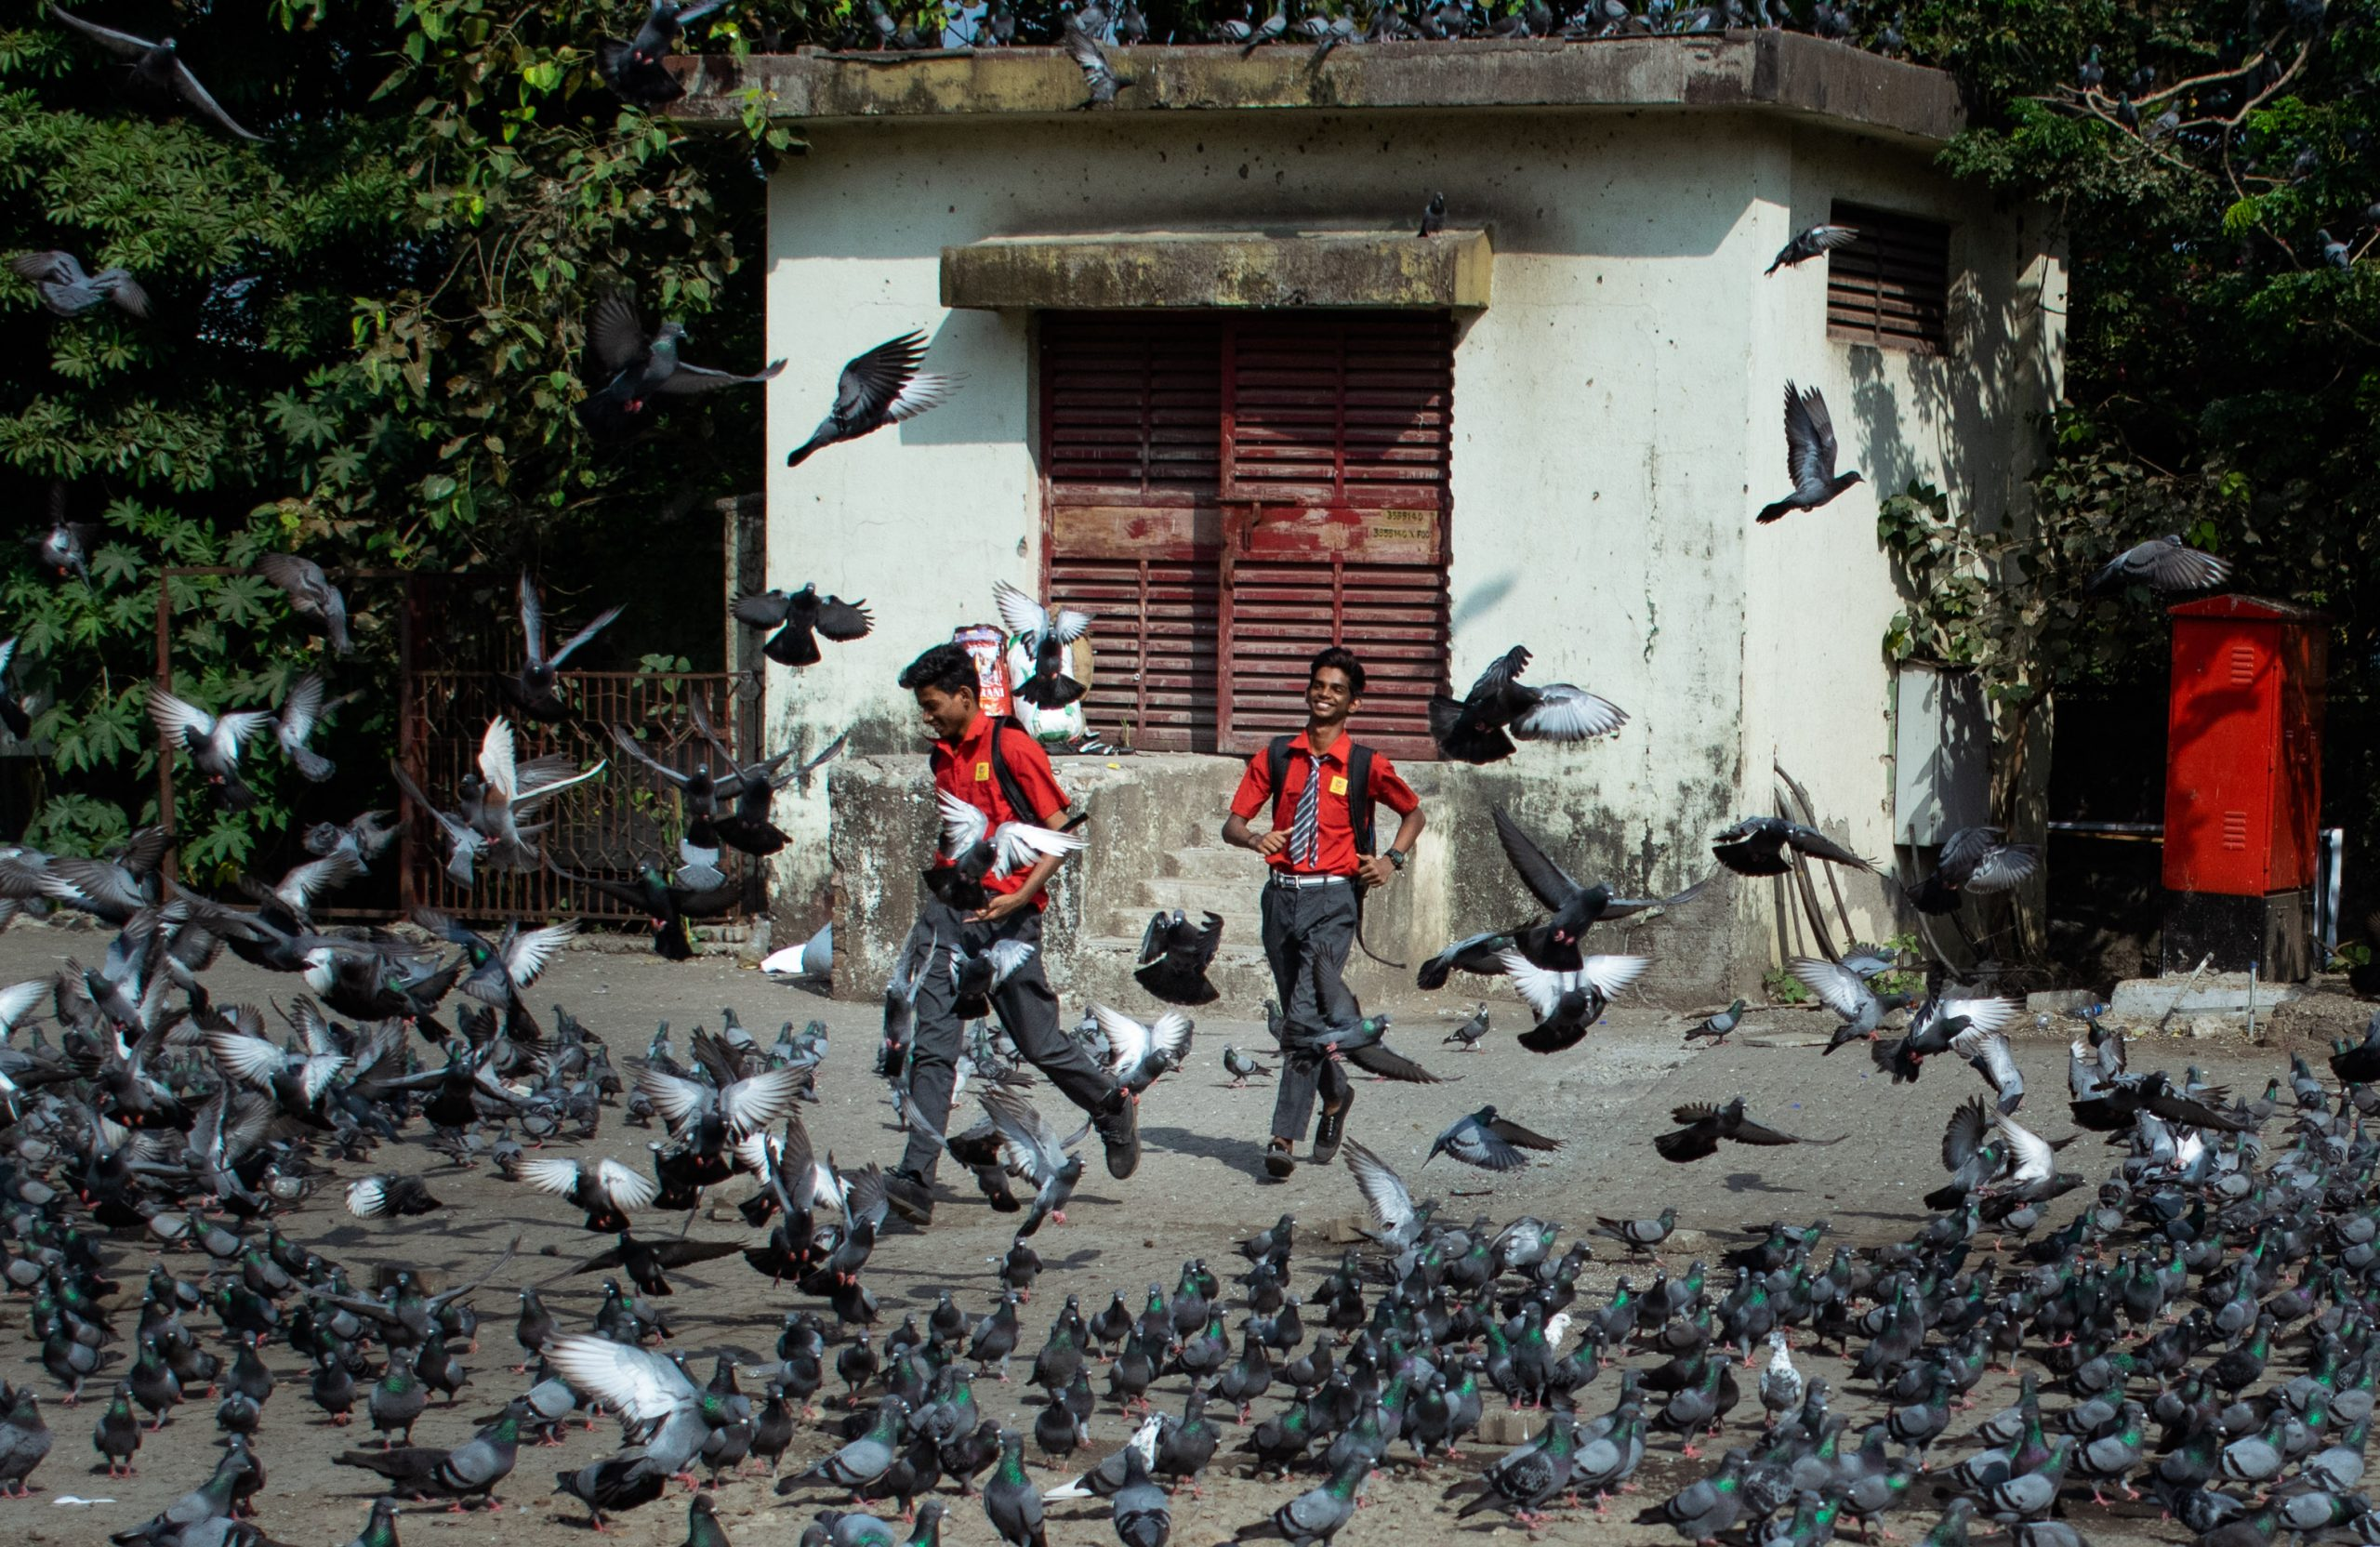 boys running amidst a flock of pigeons